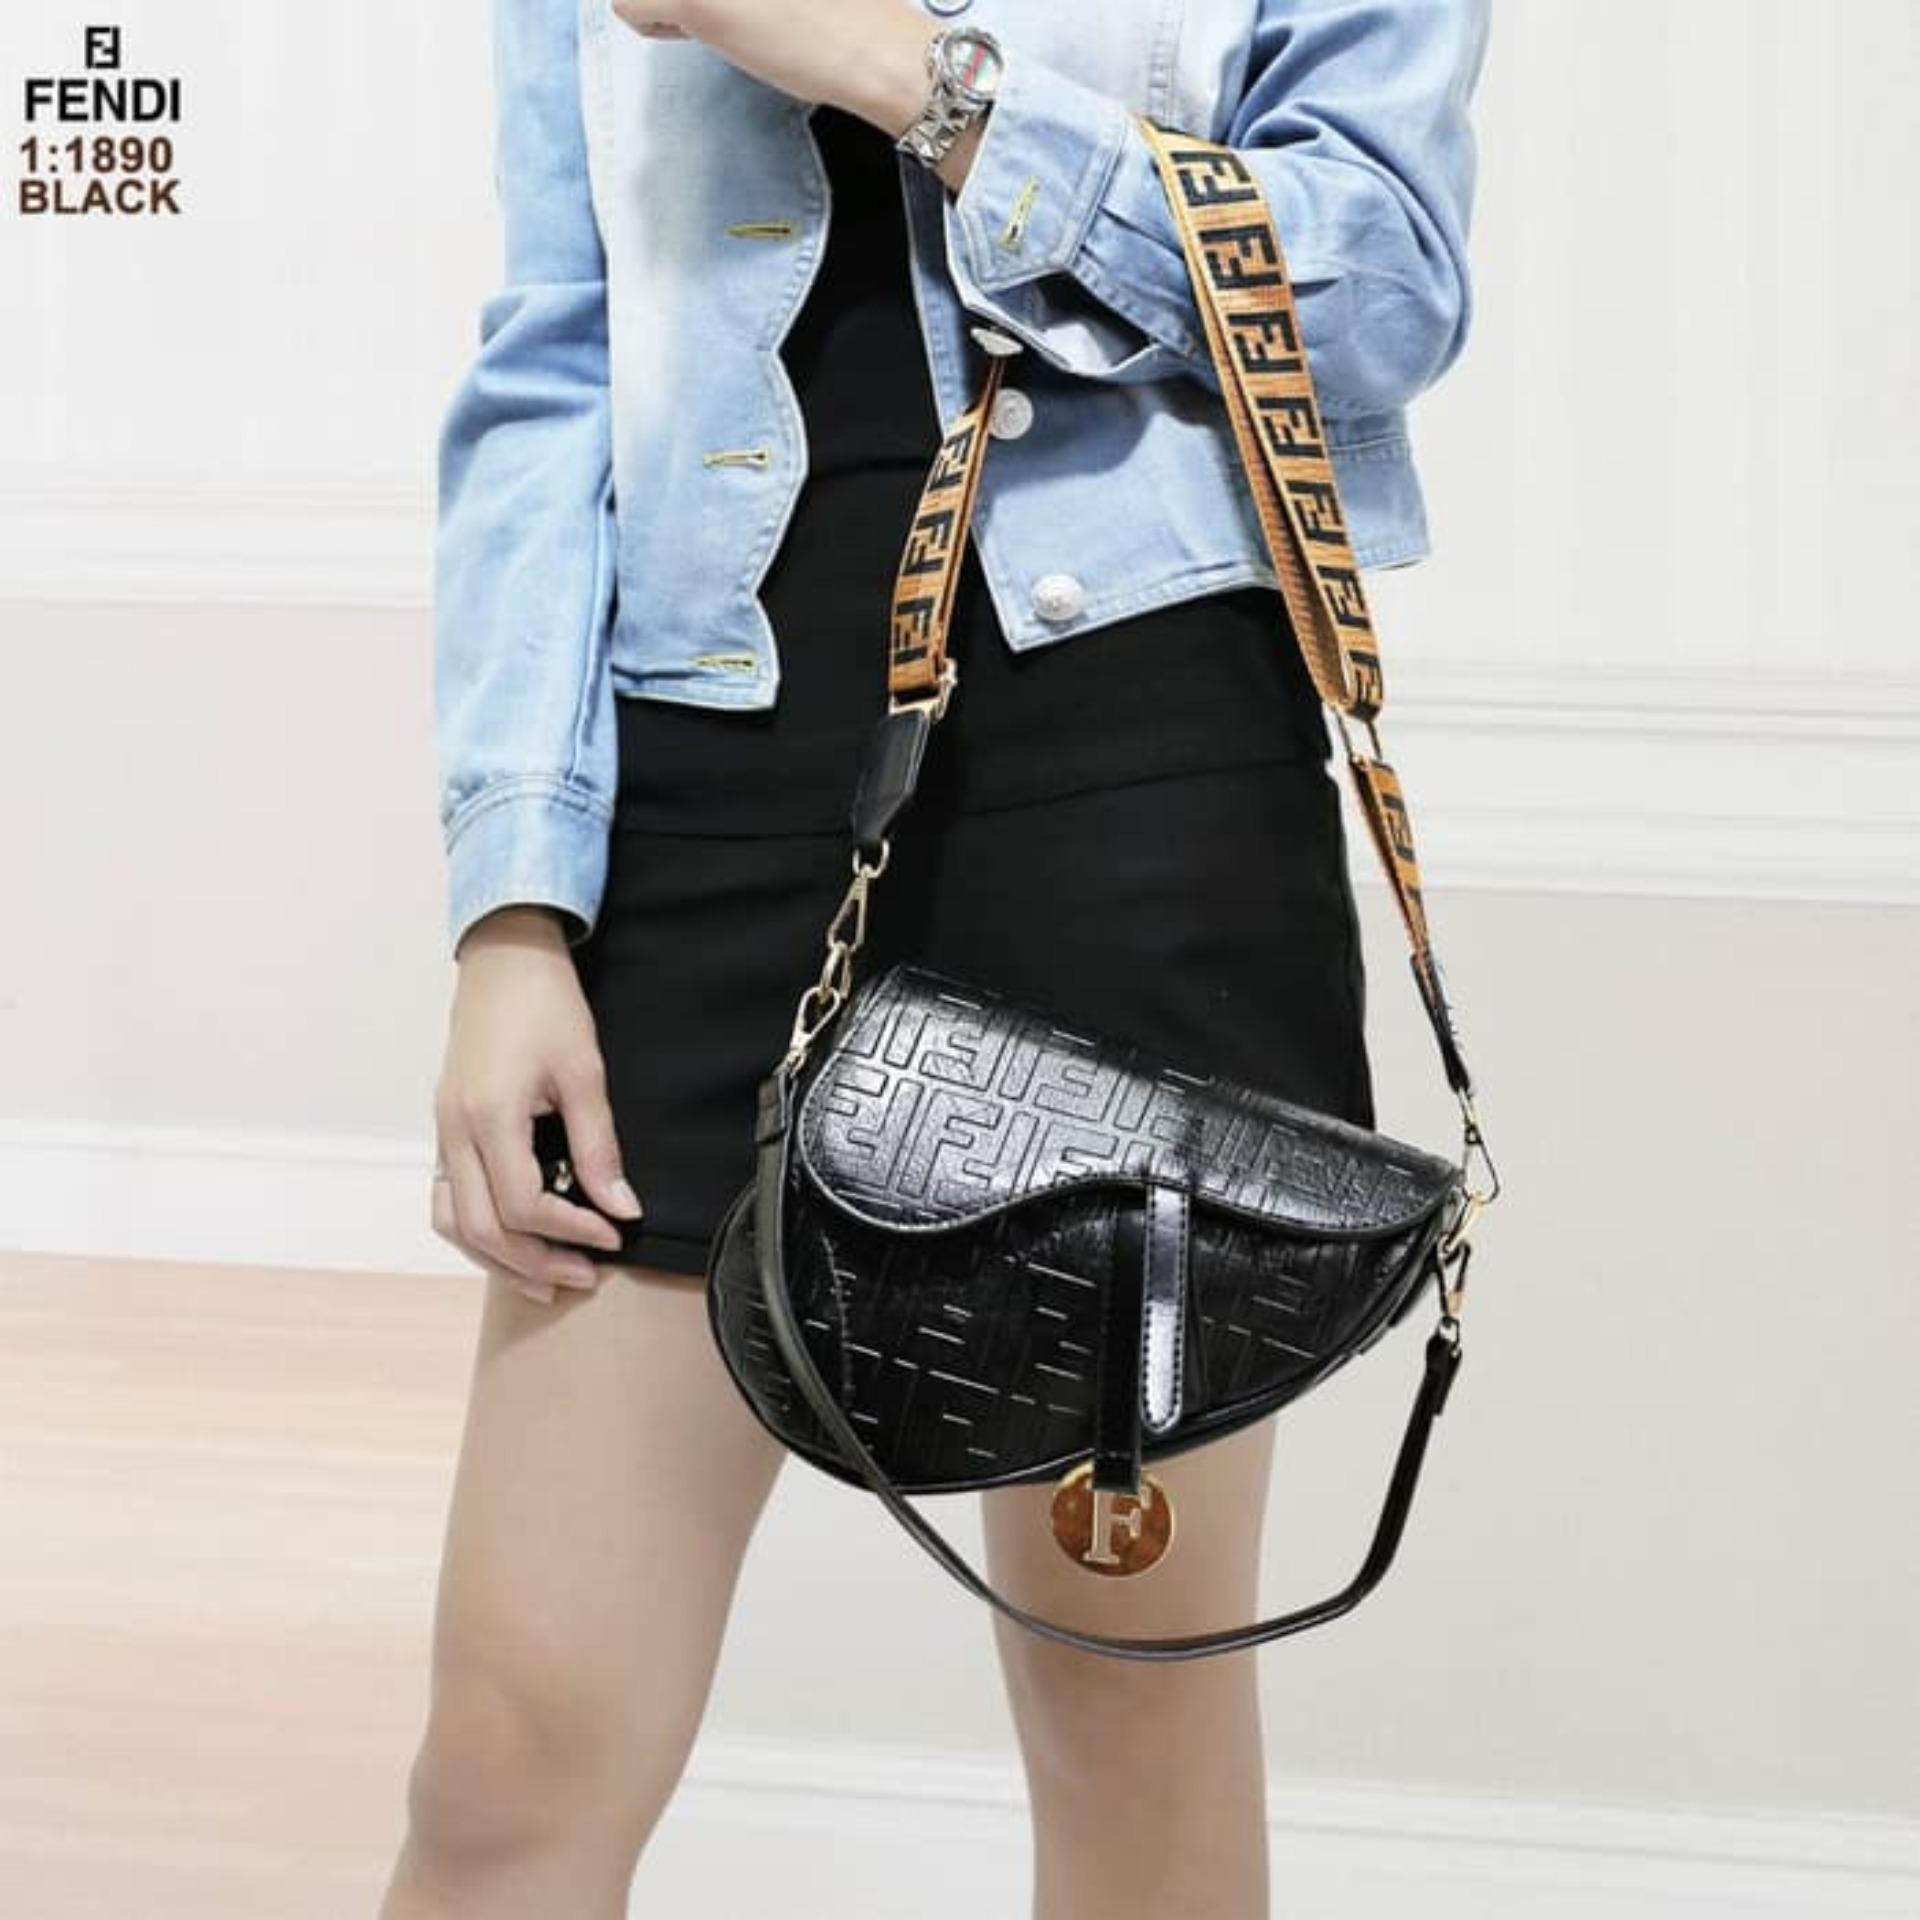 Tas FENDI Saddle / FENDI Saddle Tas Wanita / tas selempang wanita FENDI saddle / Tas Bahu wanita FENDI Saddle